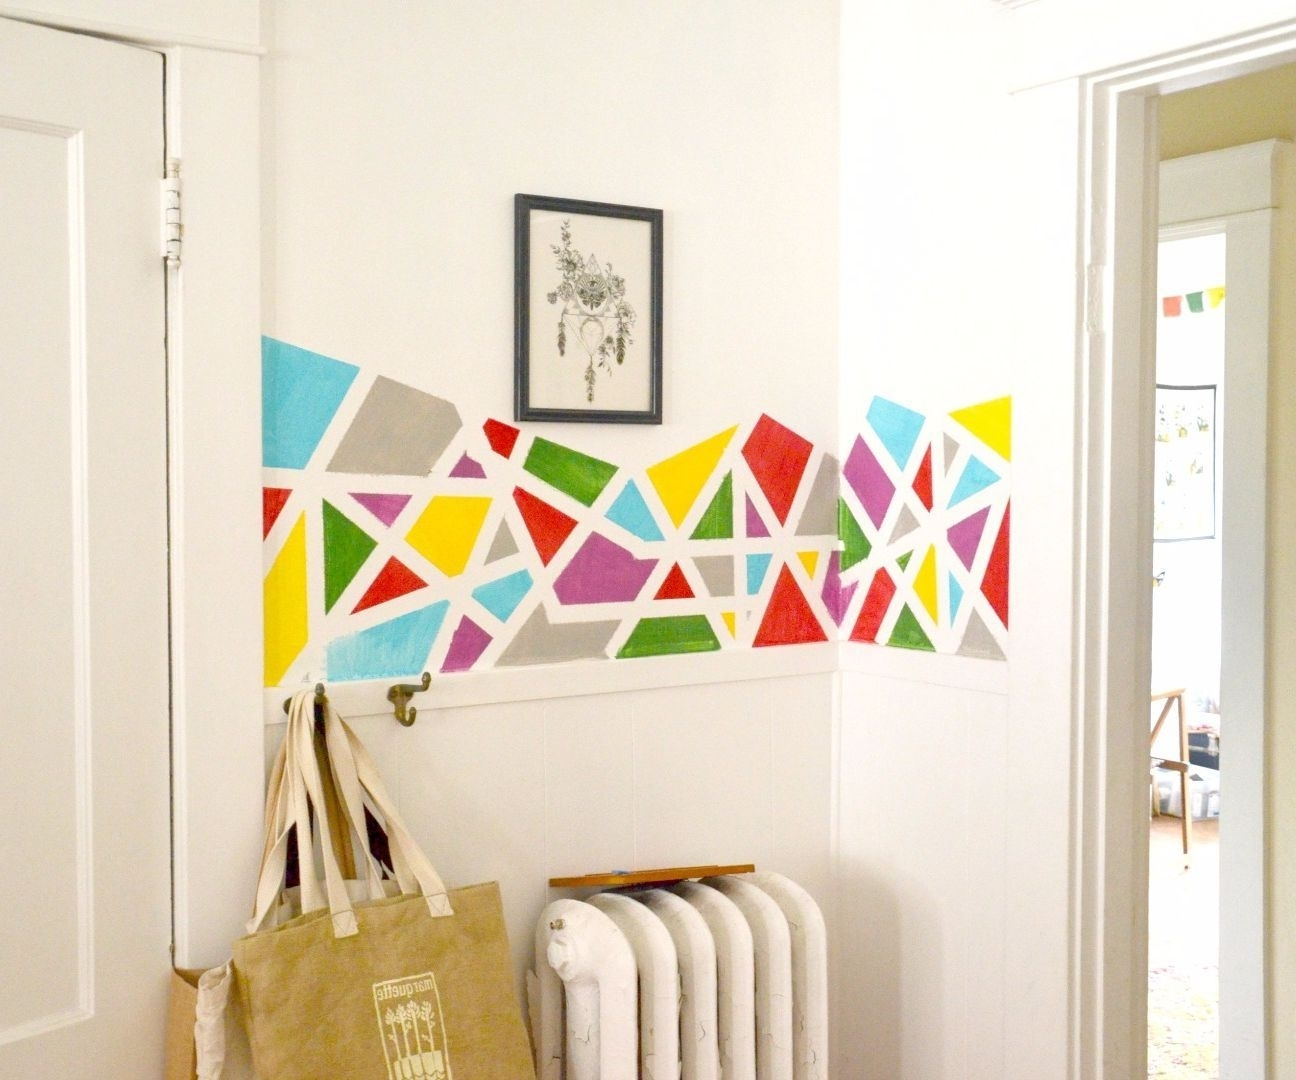 Geometric Wall Art With Regard To Most Recent Popular Geometric Wall Art — Zachary Horne Homeszachary Horne Homes (View 5 of 20)